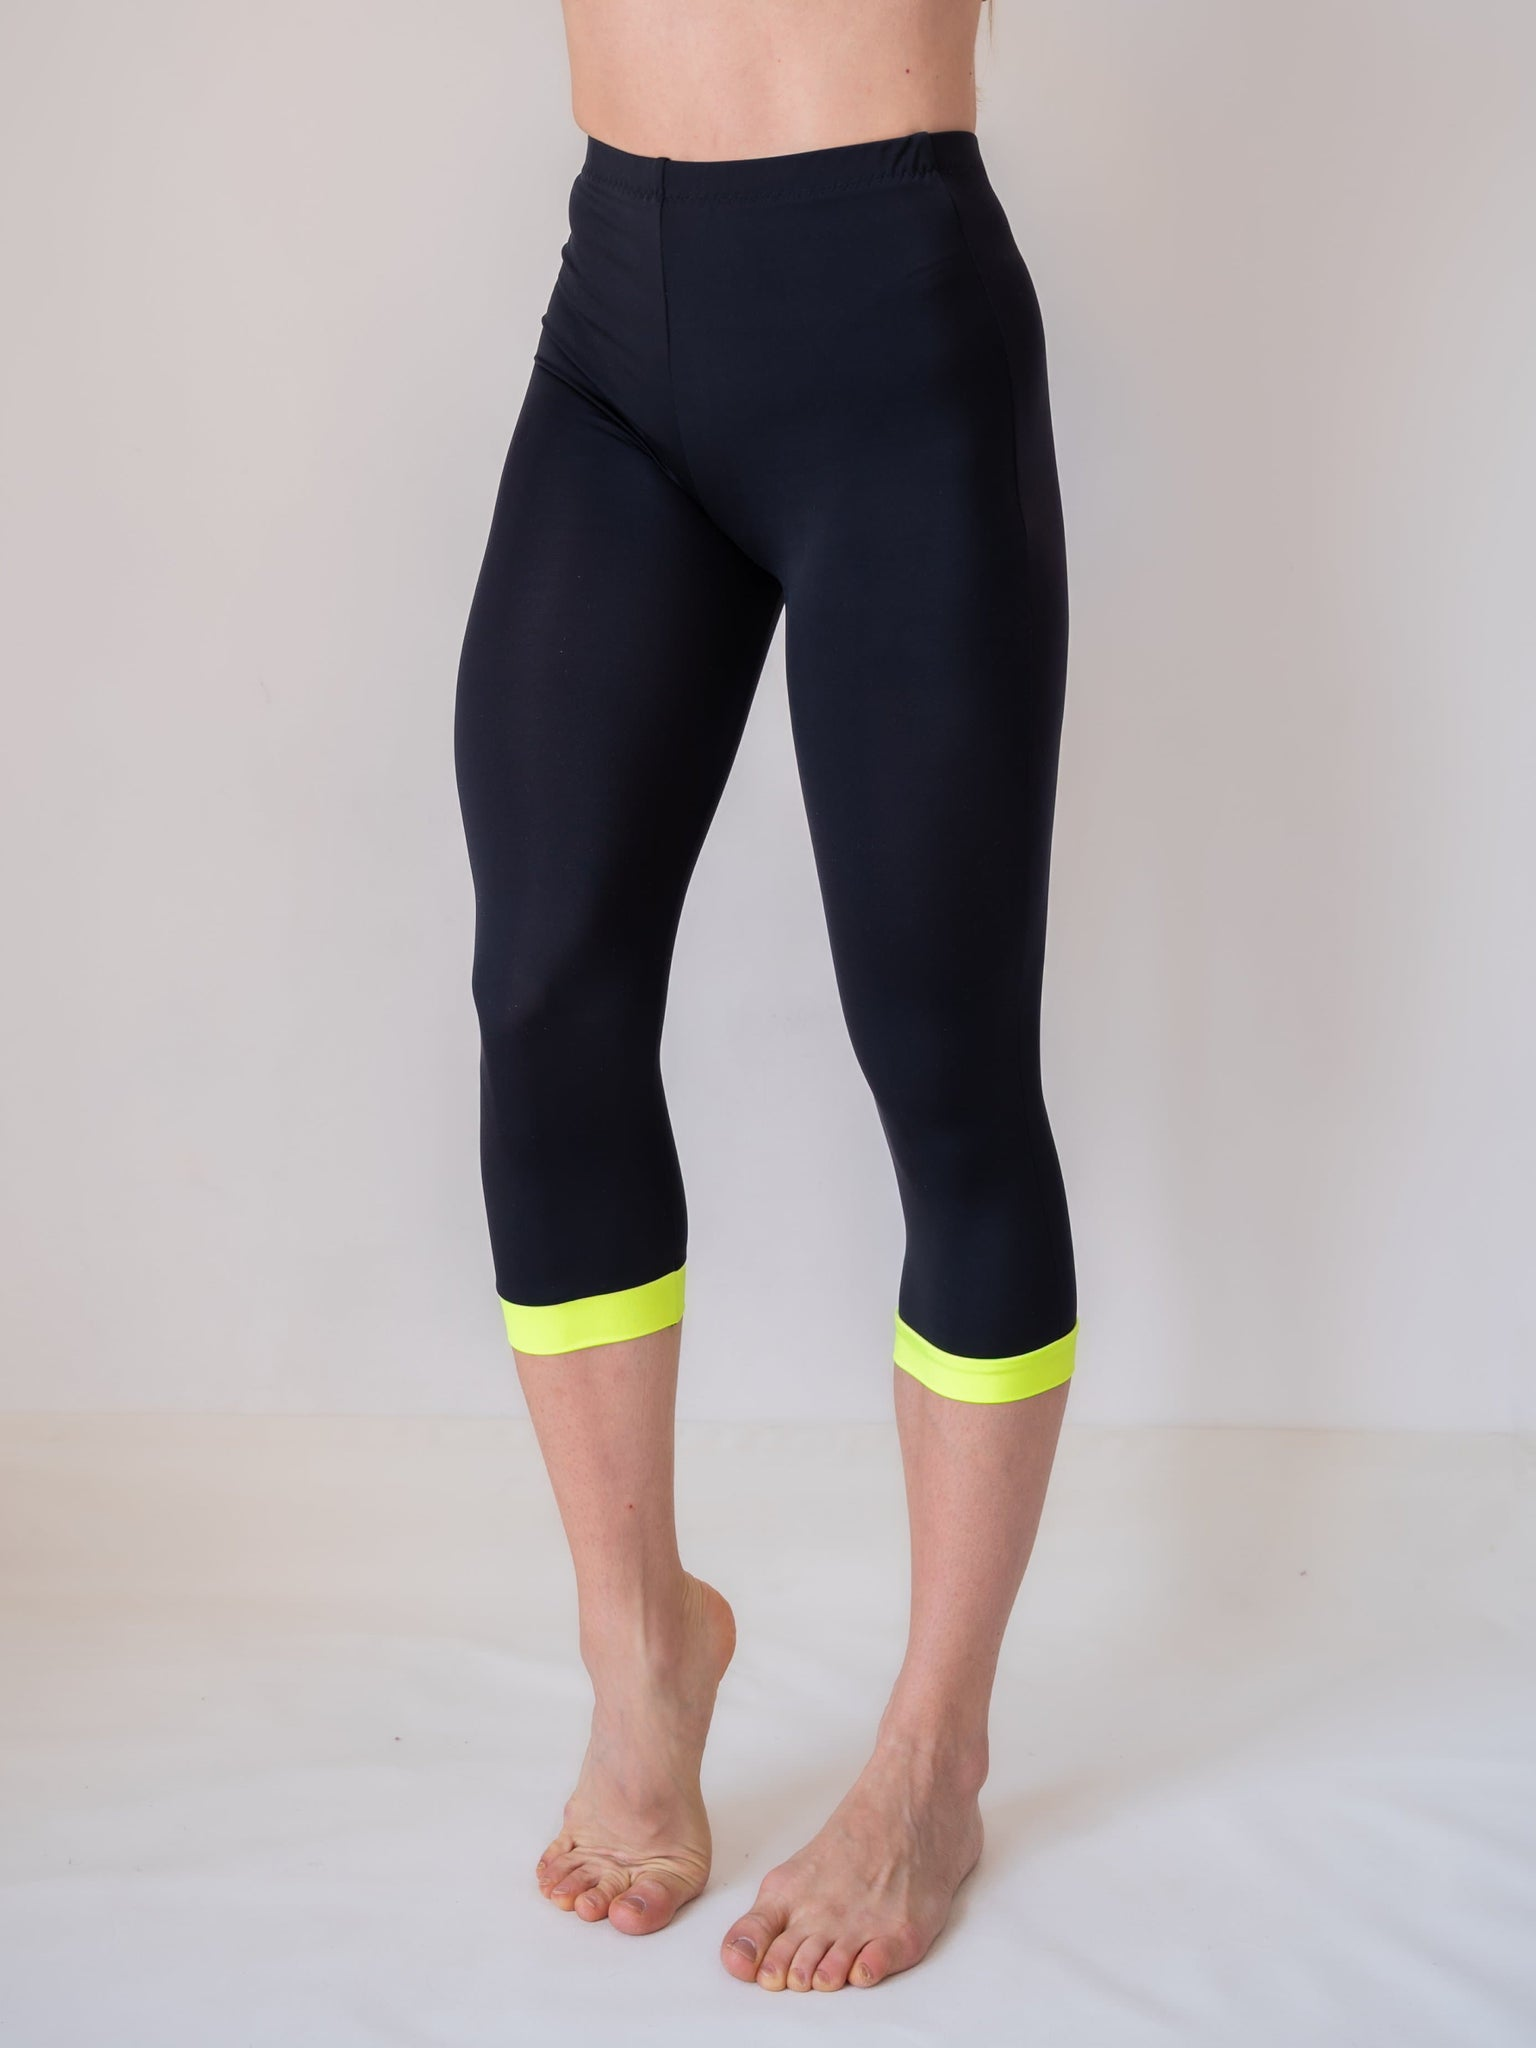 Black and yellow yoga and fitness capri legging for women and girls by Lena Activewear